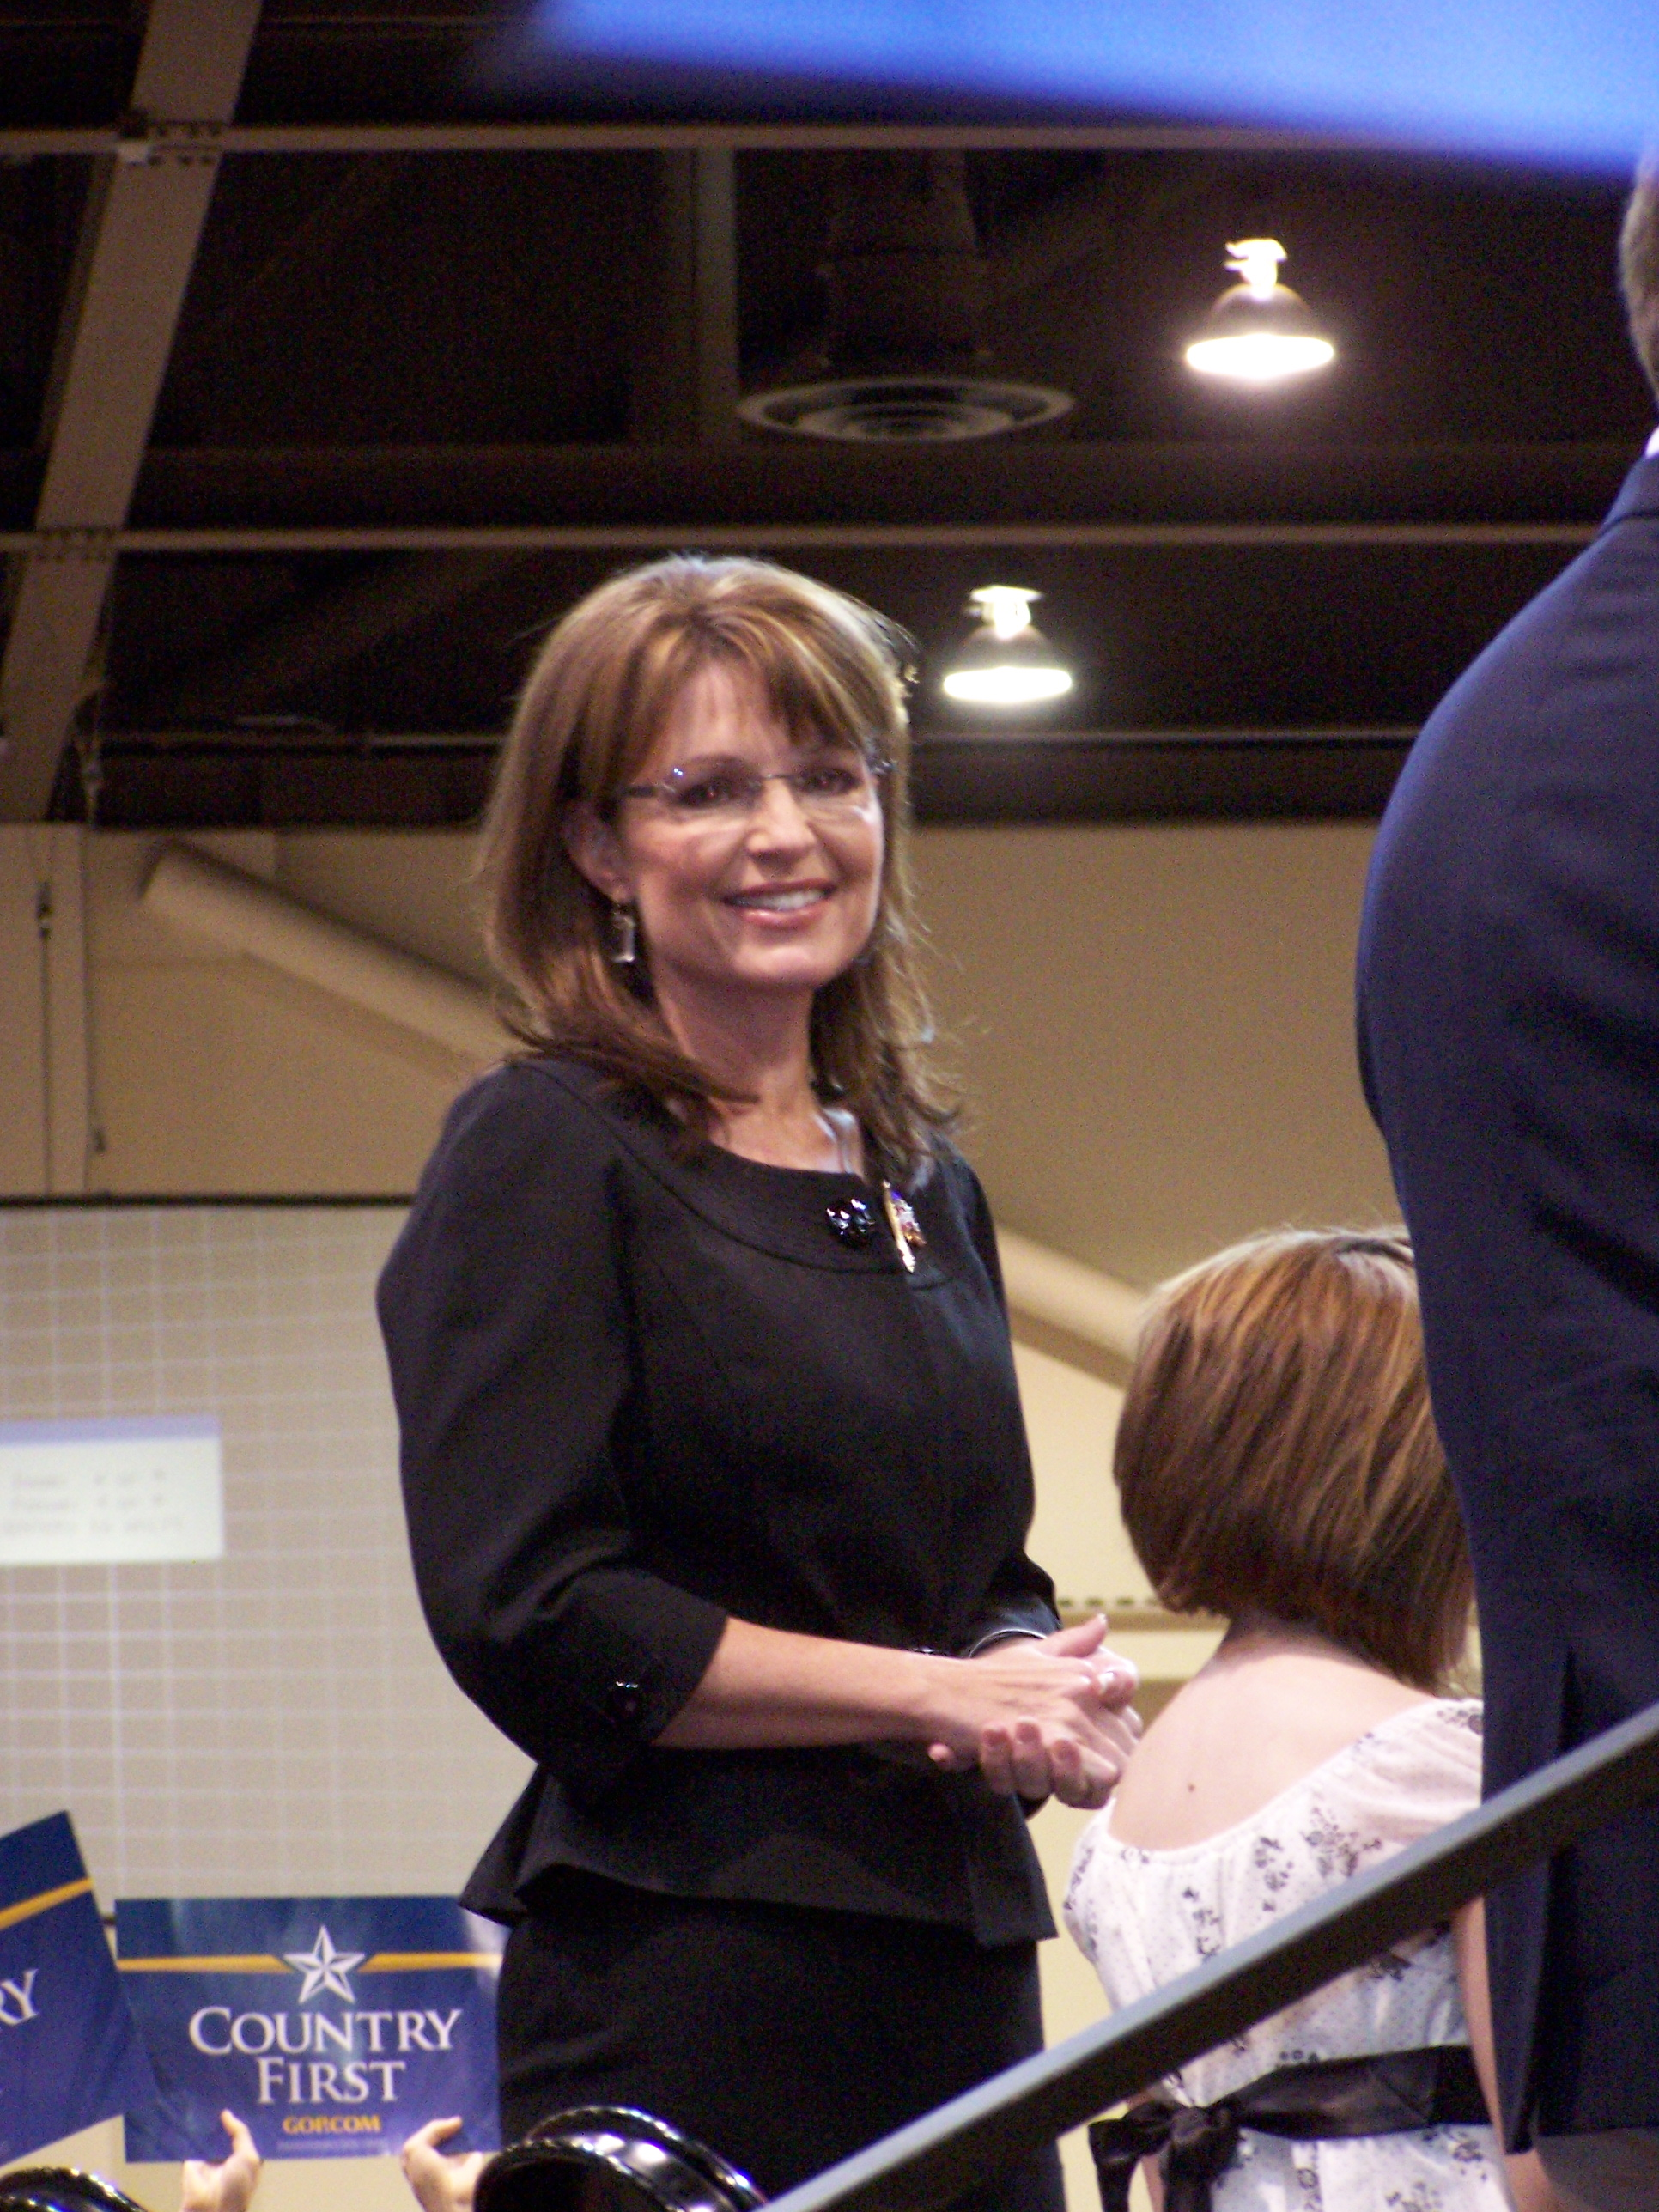 Sarah Palin in Reno